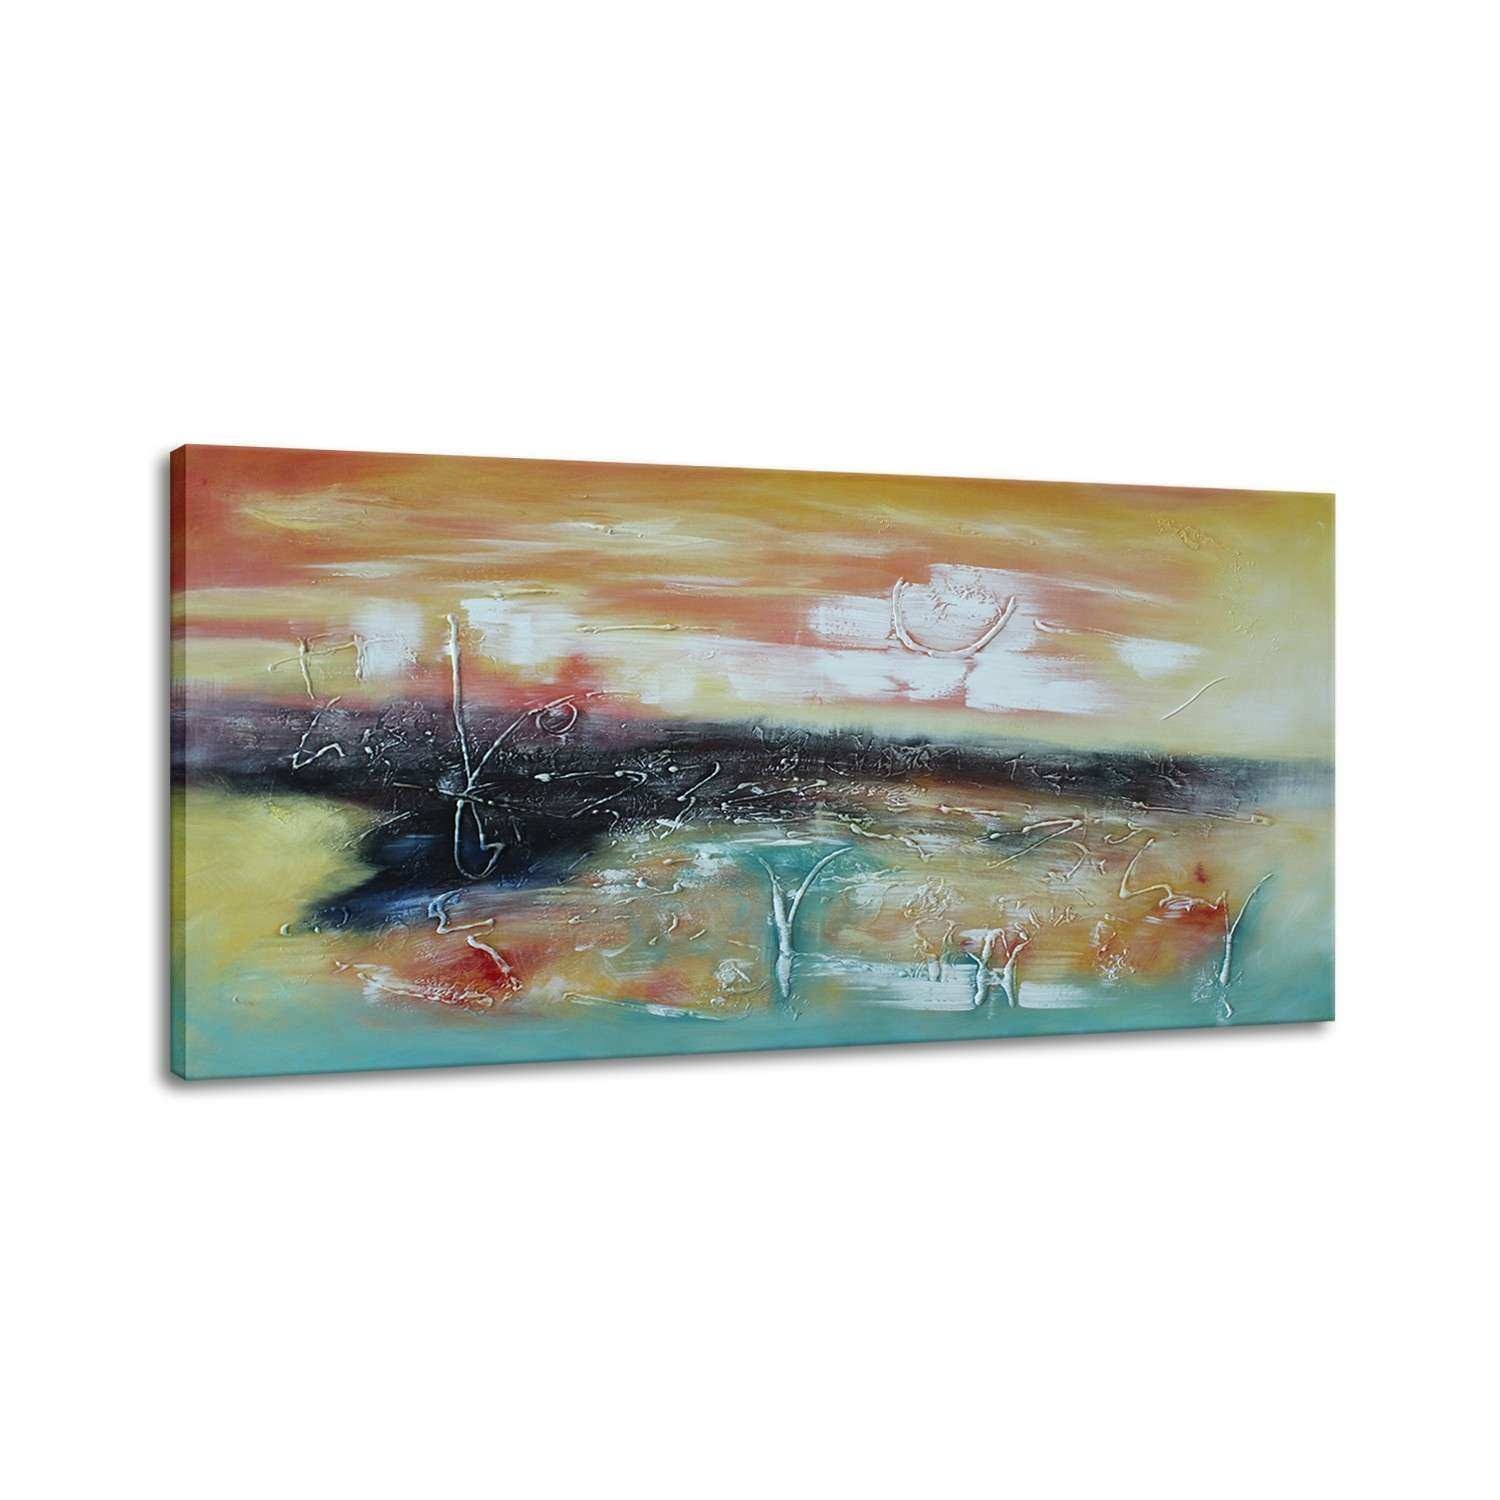 Oil Painting Oil Paintings for sale online Canvas art